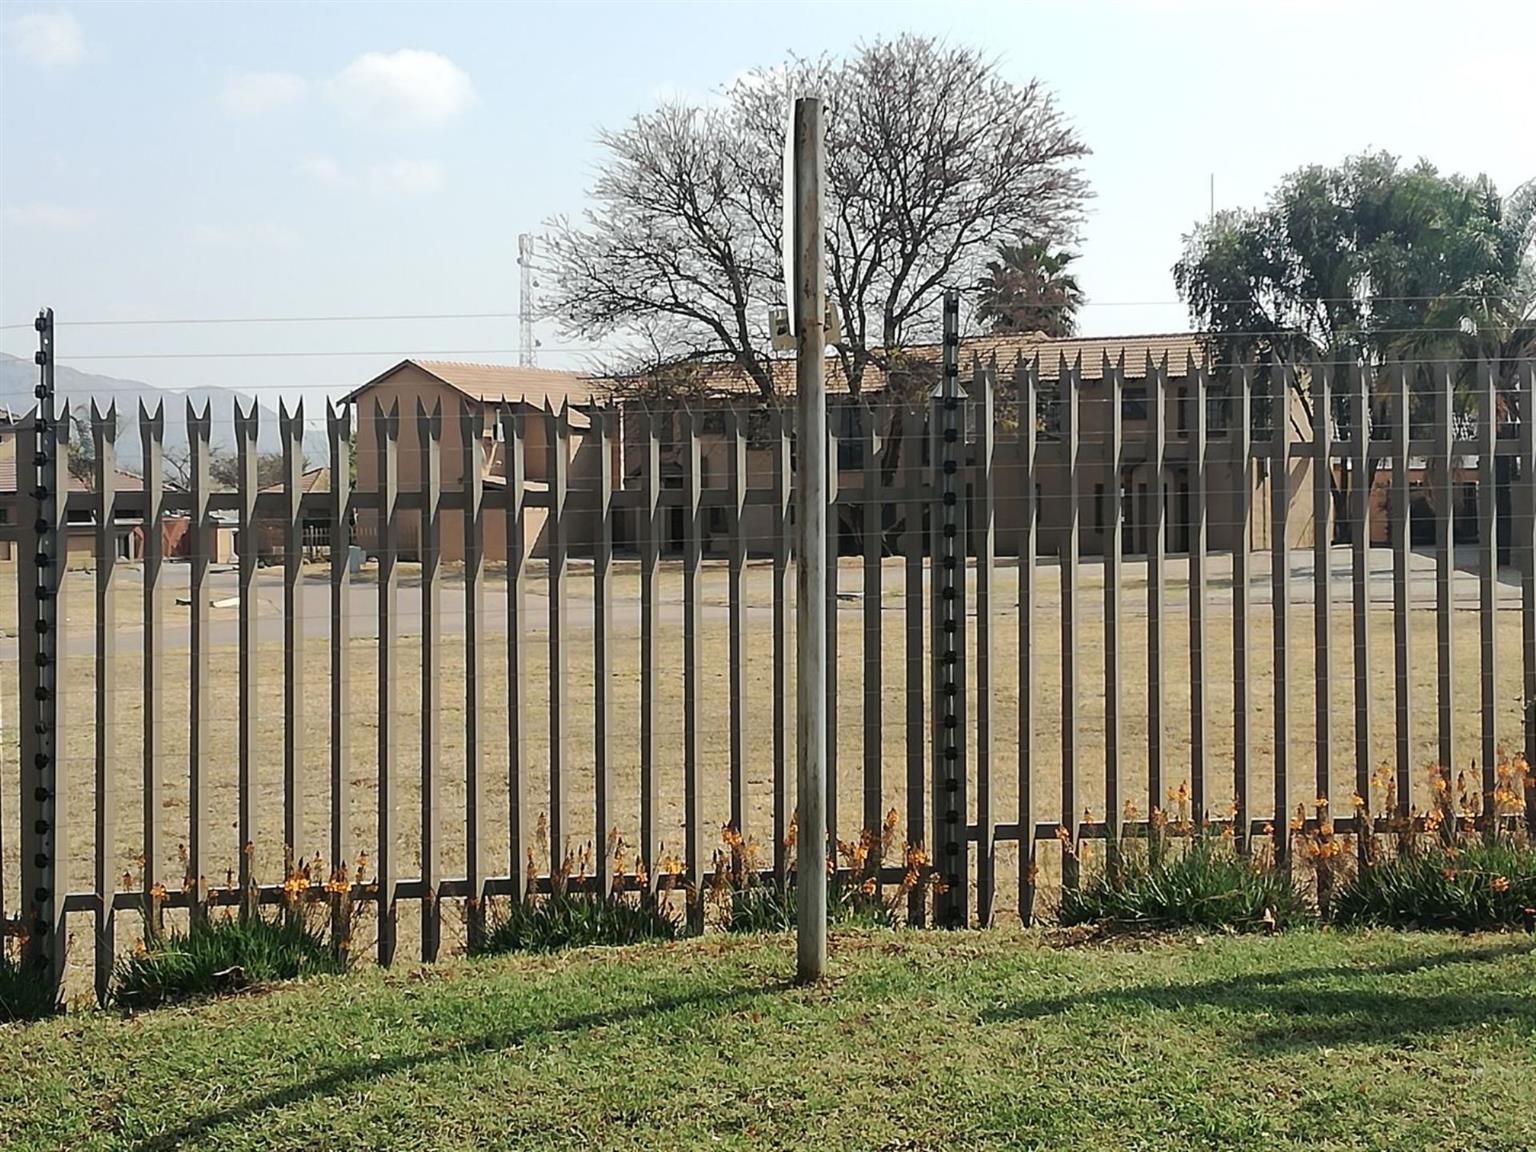 Vacant Land Residential For Sale in BRITS